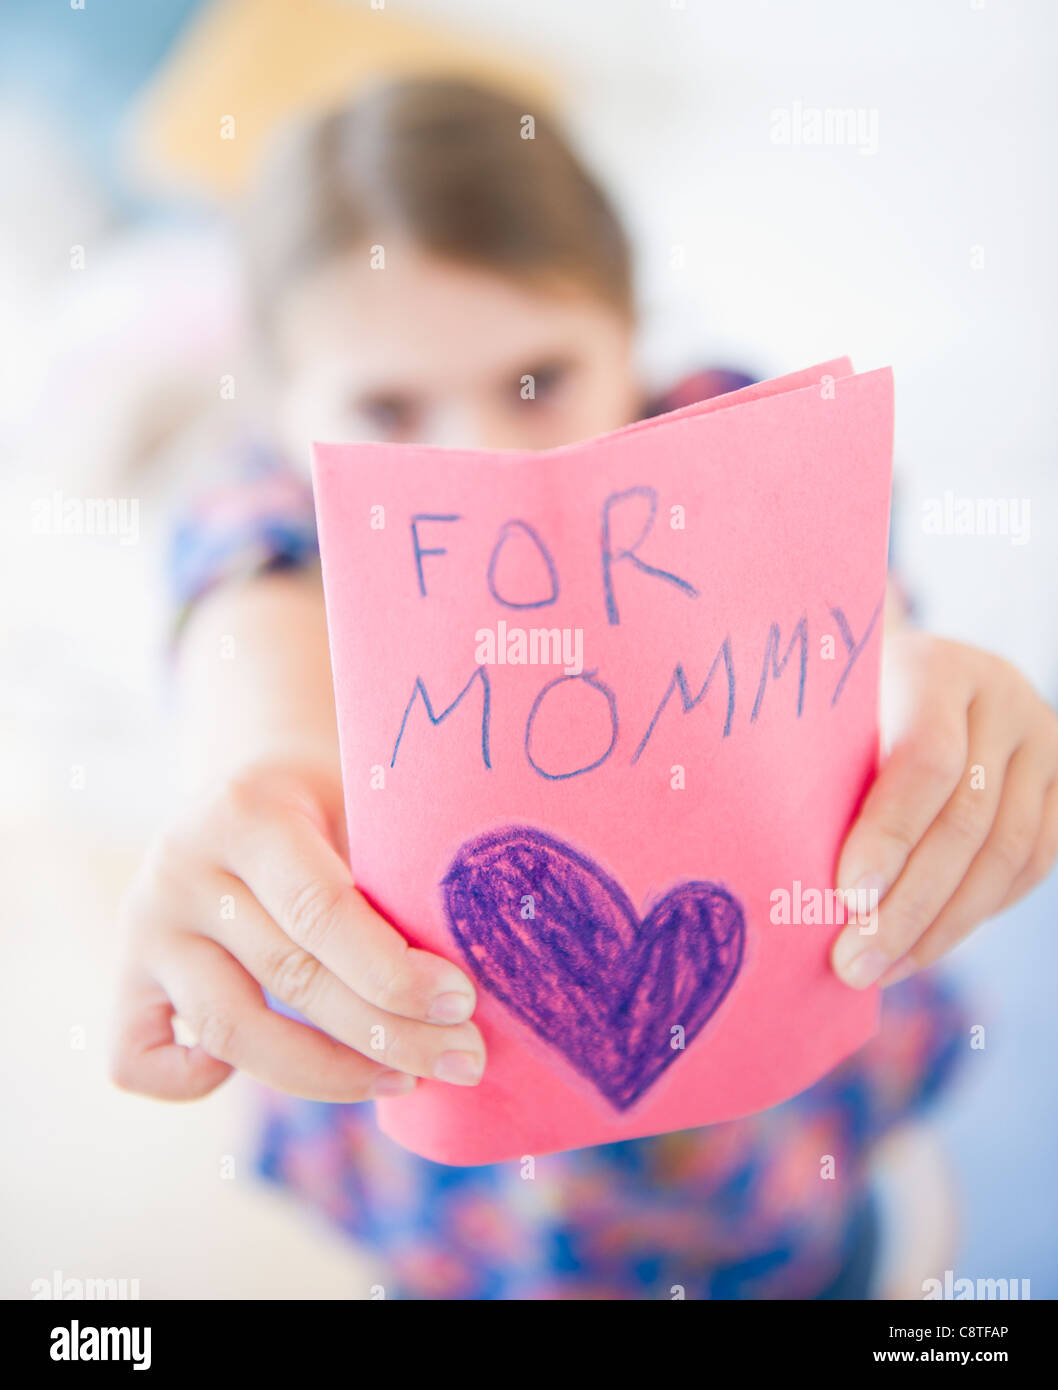 USA, New Jersey, Jersey City, Girl showing greeting card for mother's day - Stock Image